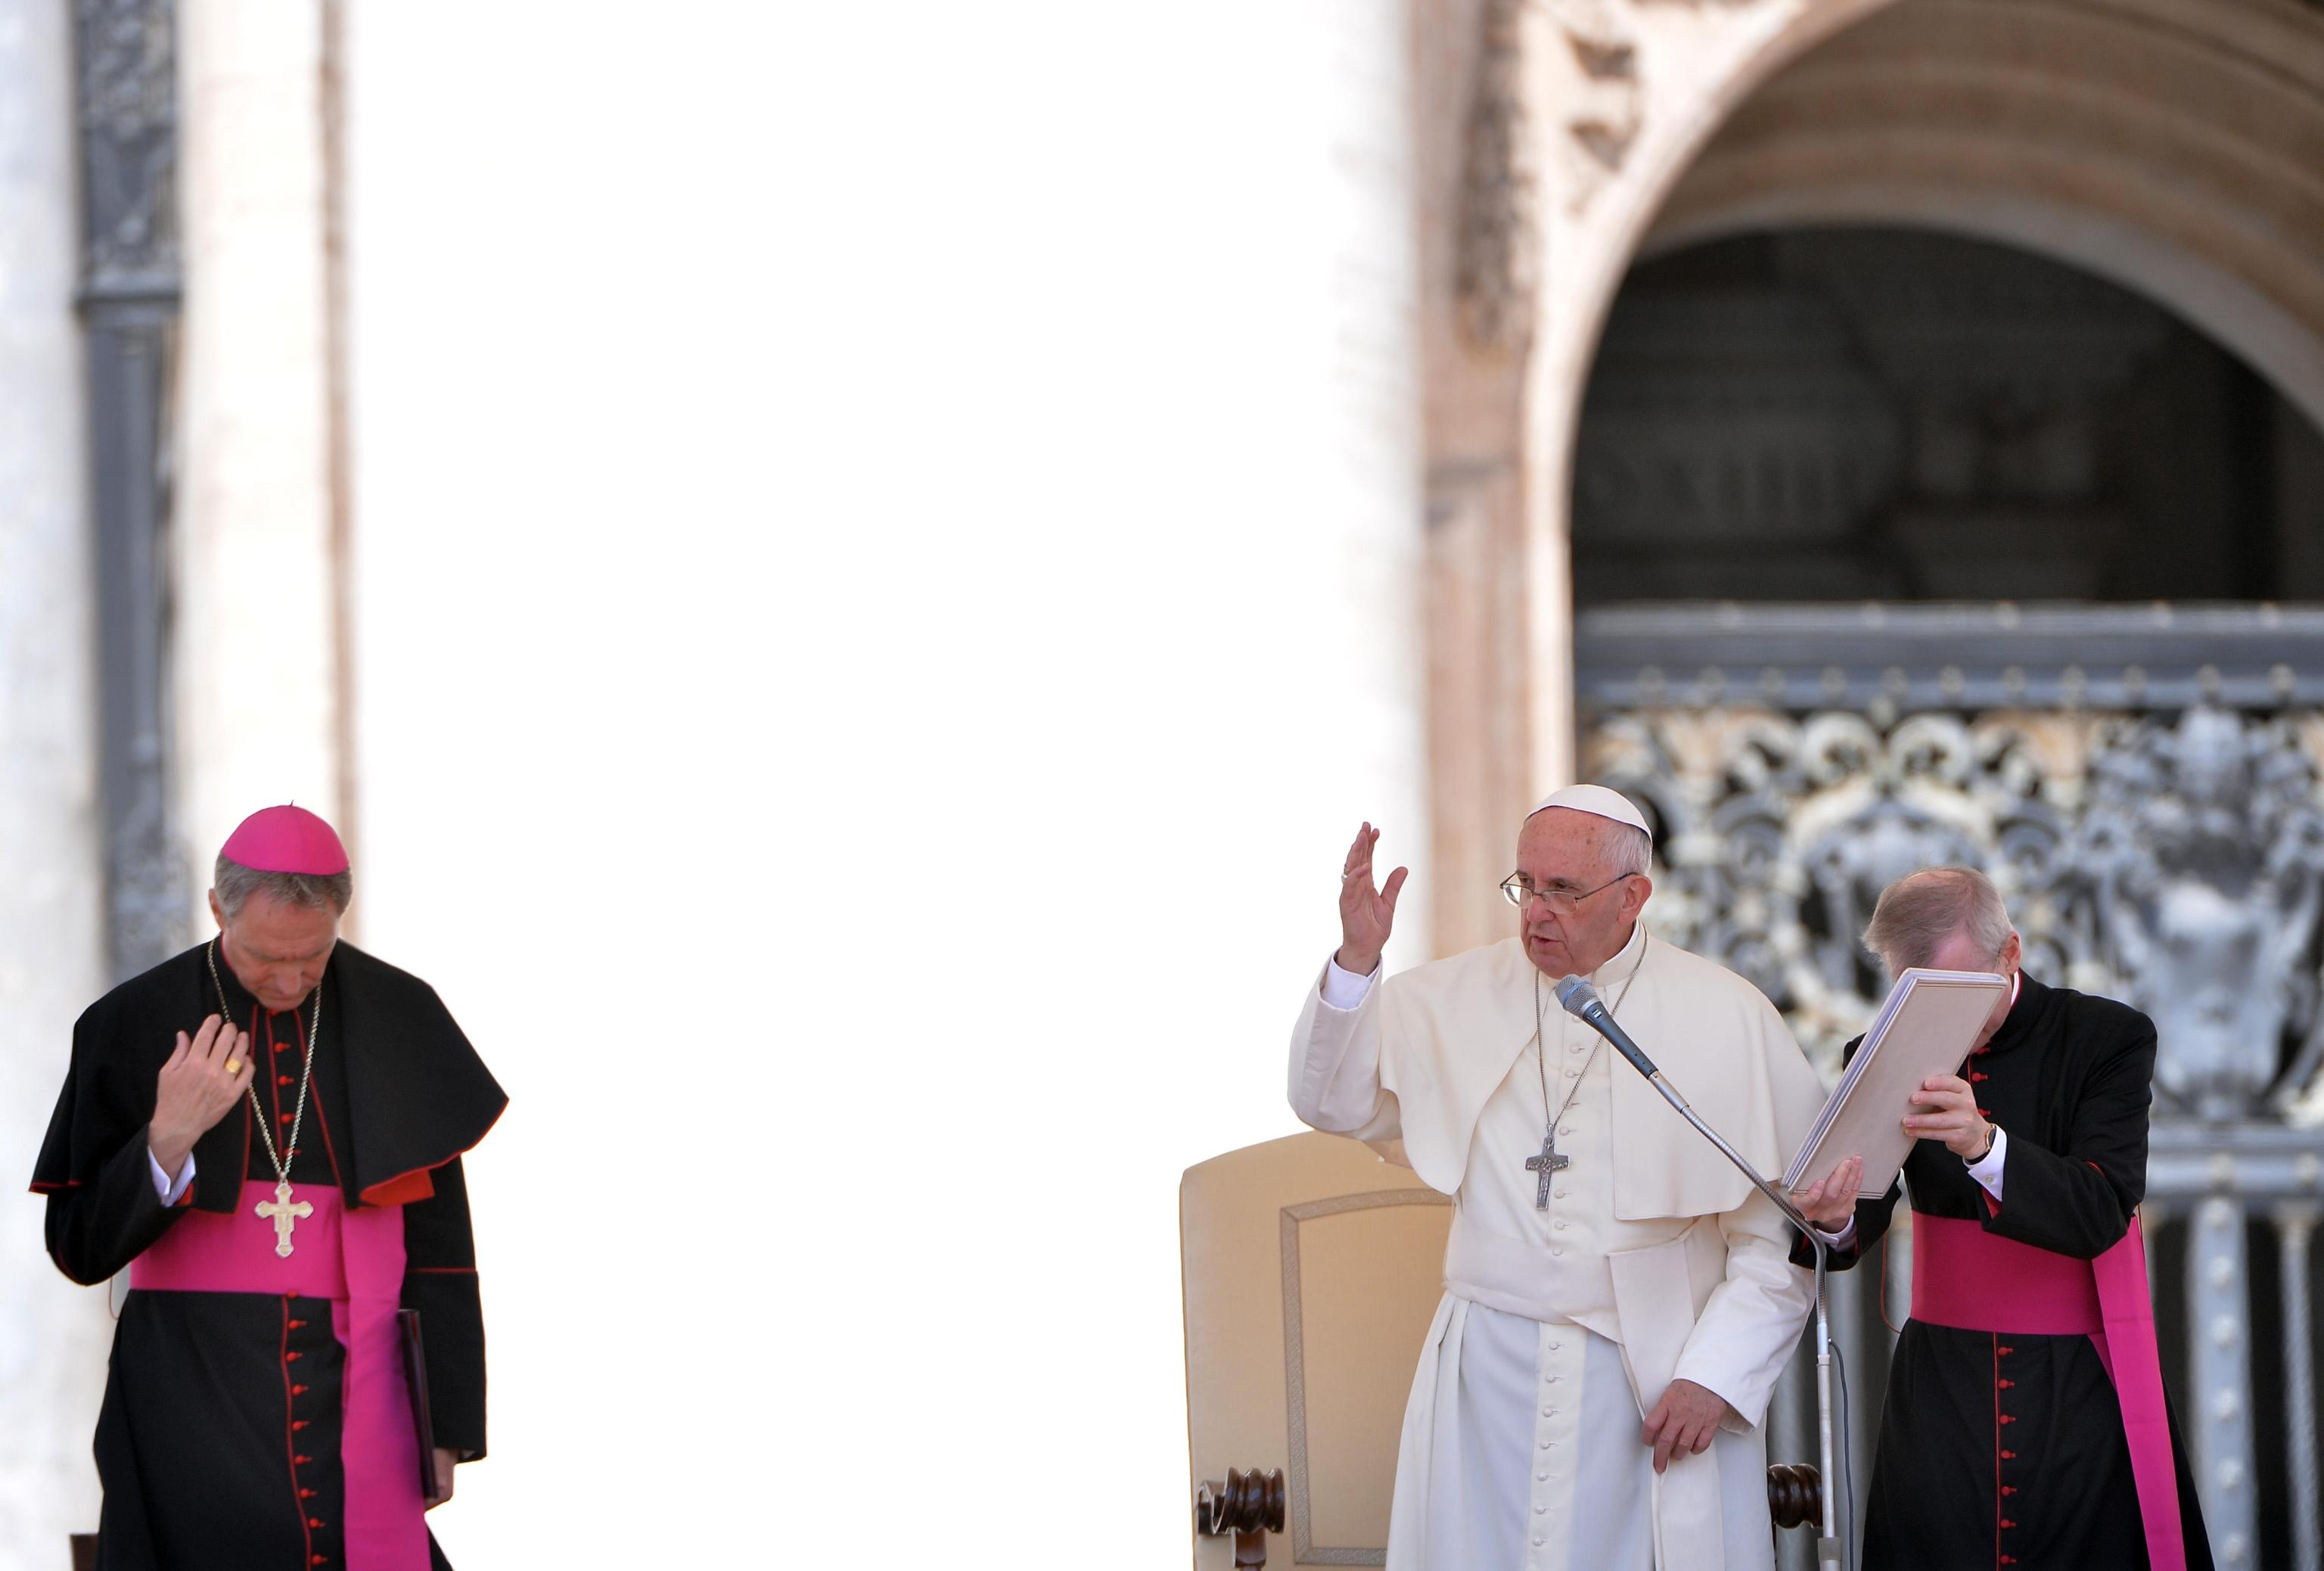 Pope Francis blesses the faithful during his weekly general audience